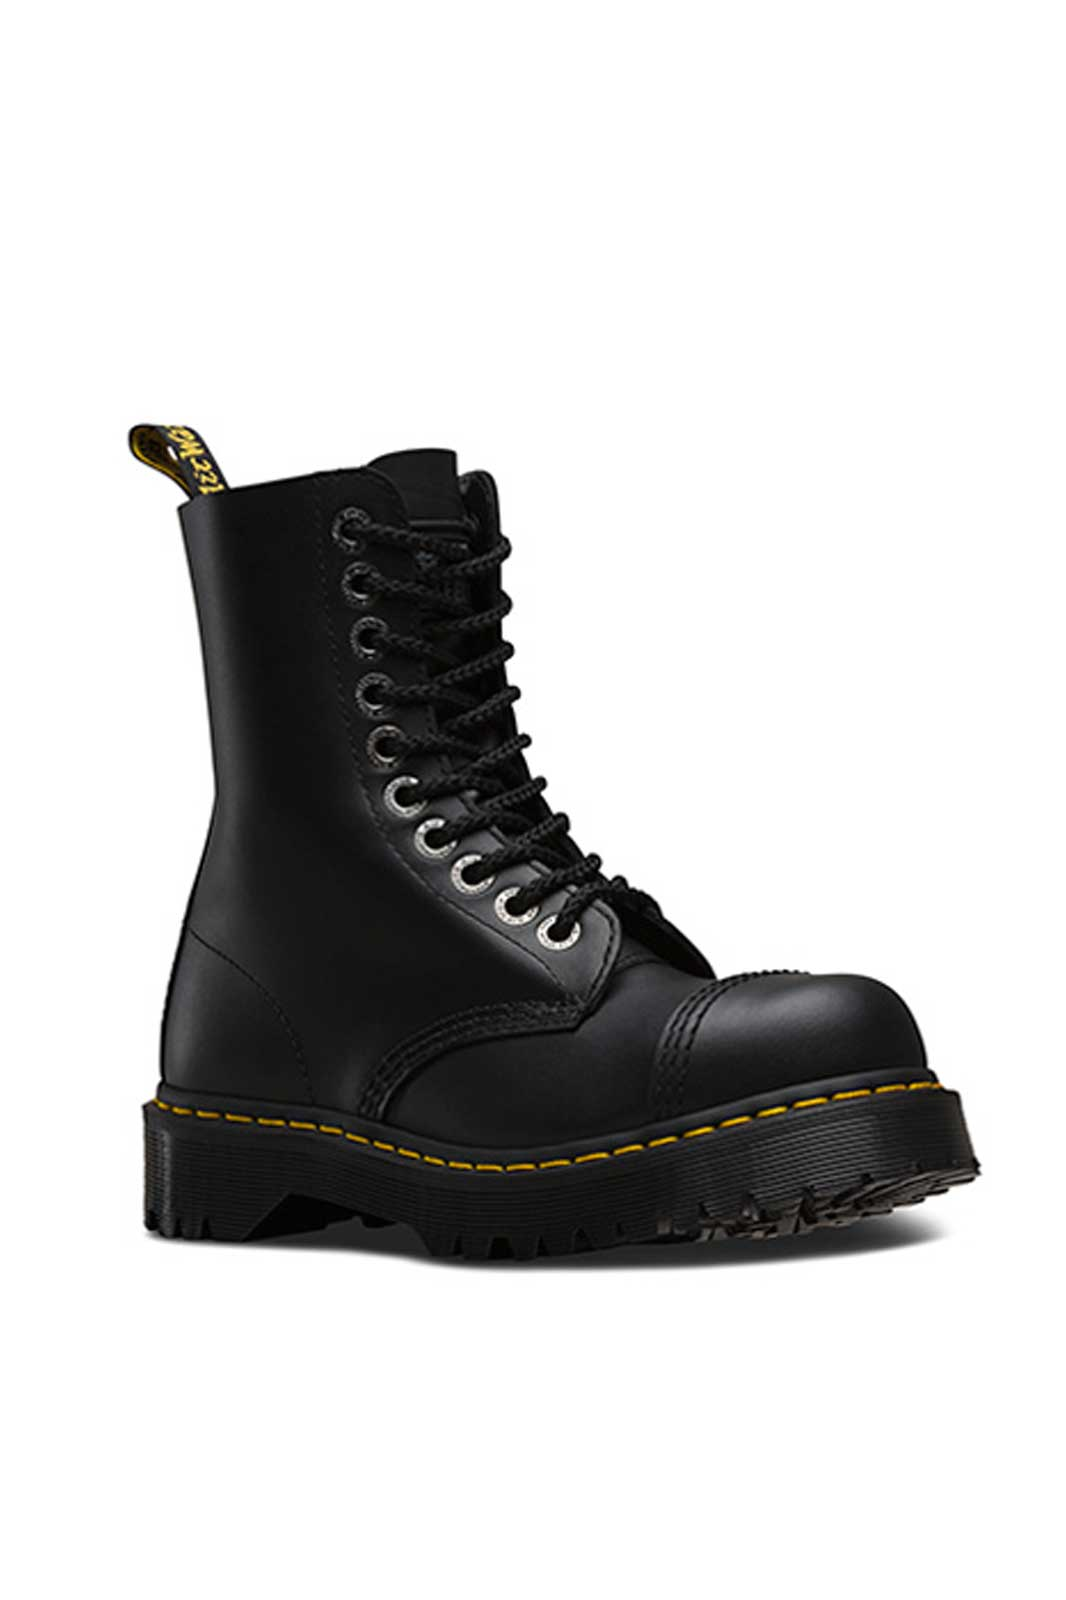 dr martens 8761-10 eye steeltoe boot